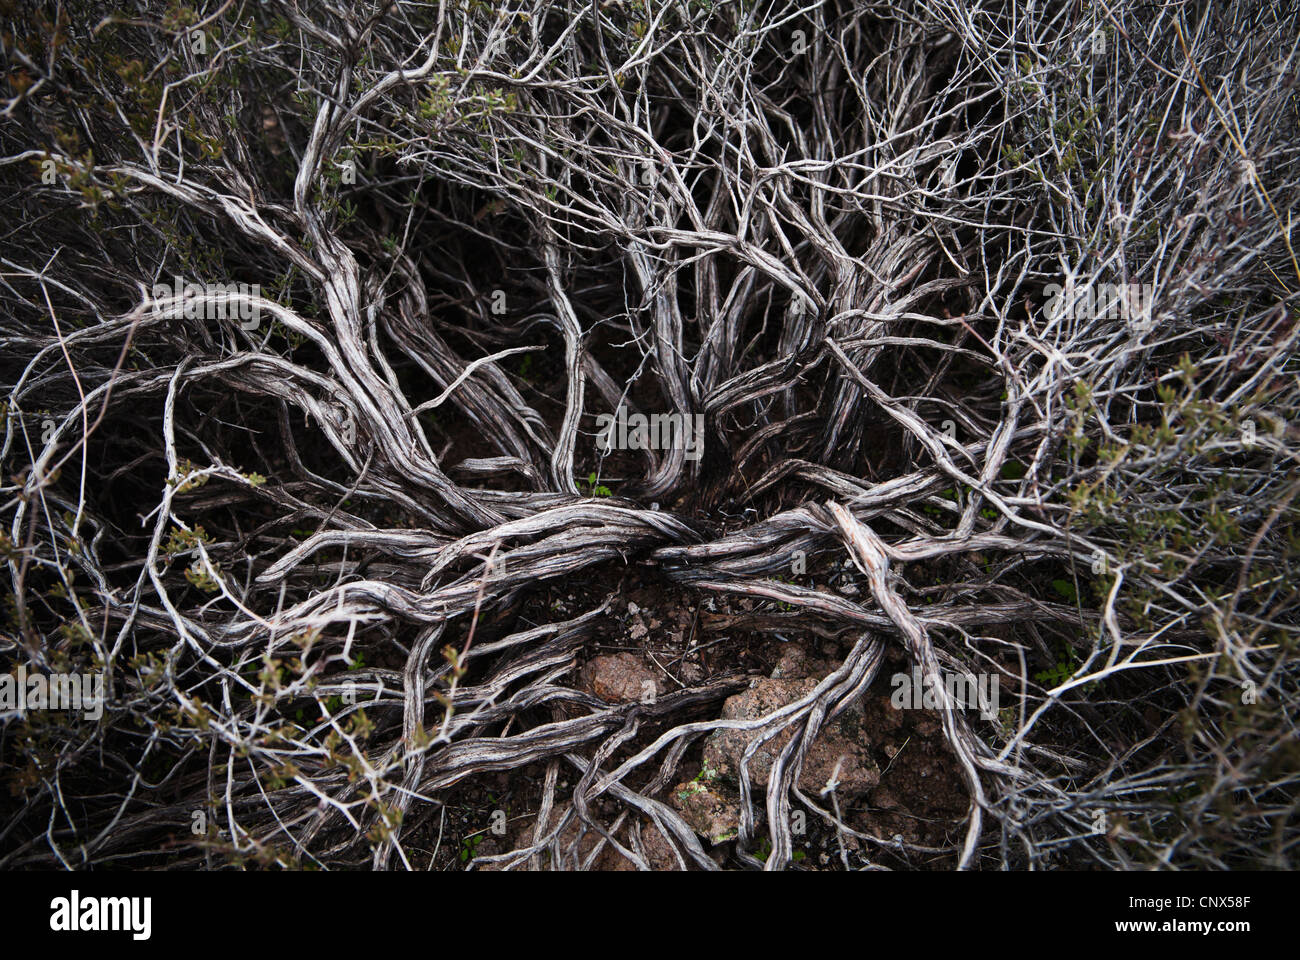 Closeup of the branches of a desert shrub, Superstition Mountains, Arizona, USA. - Stock Image